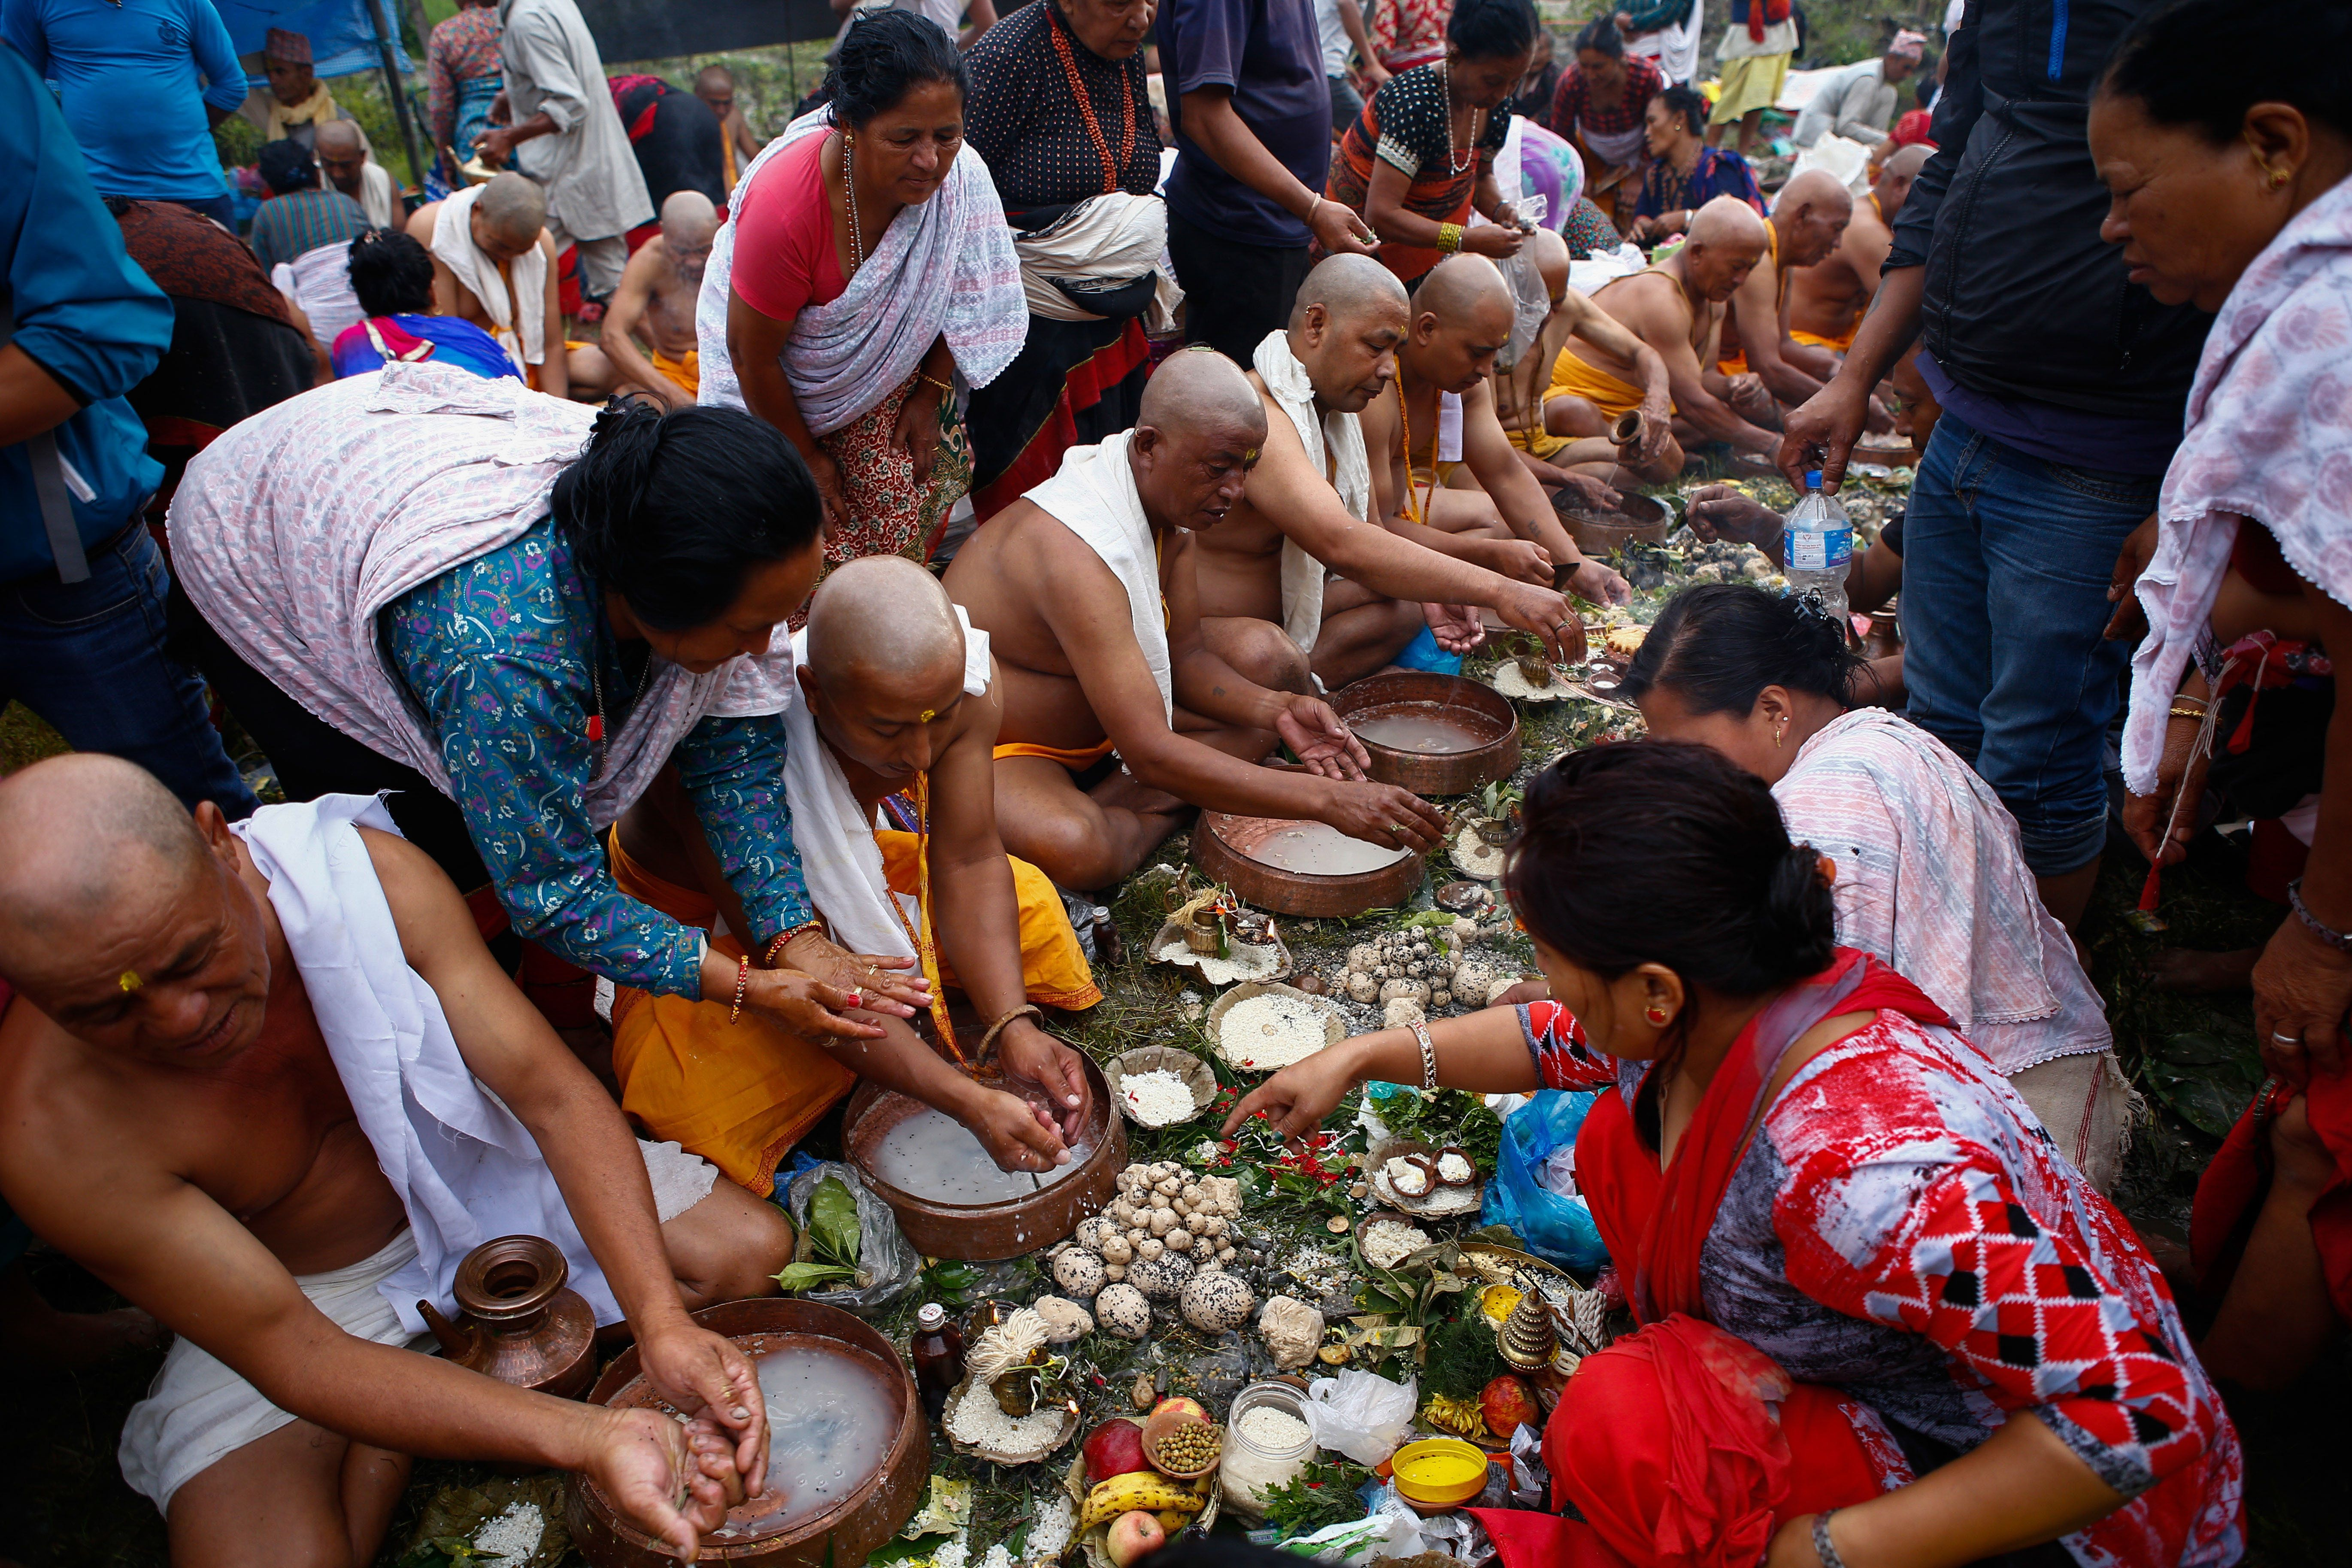 People perform rituals to honor their deceased fathers at a temple on the Bagmati River in Gokarna, Nepal.